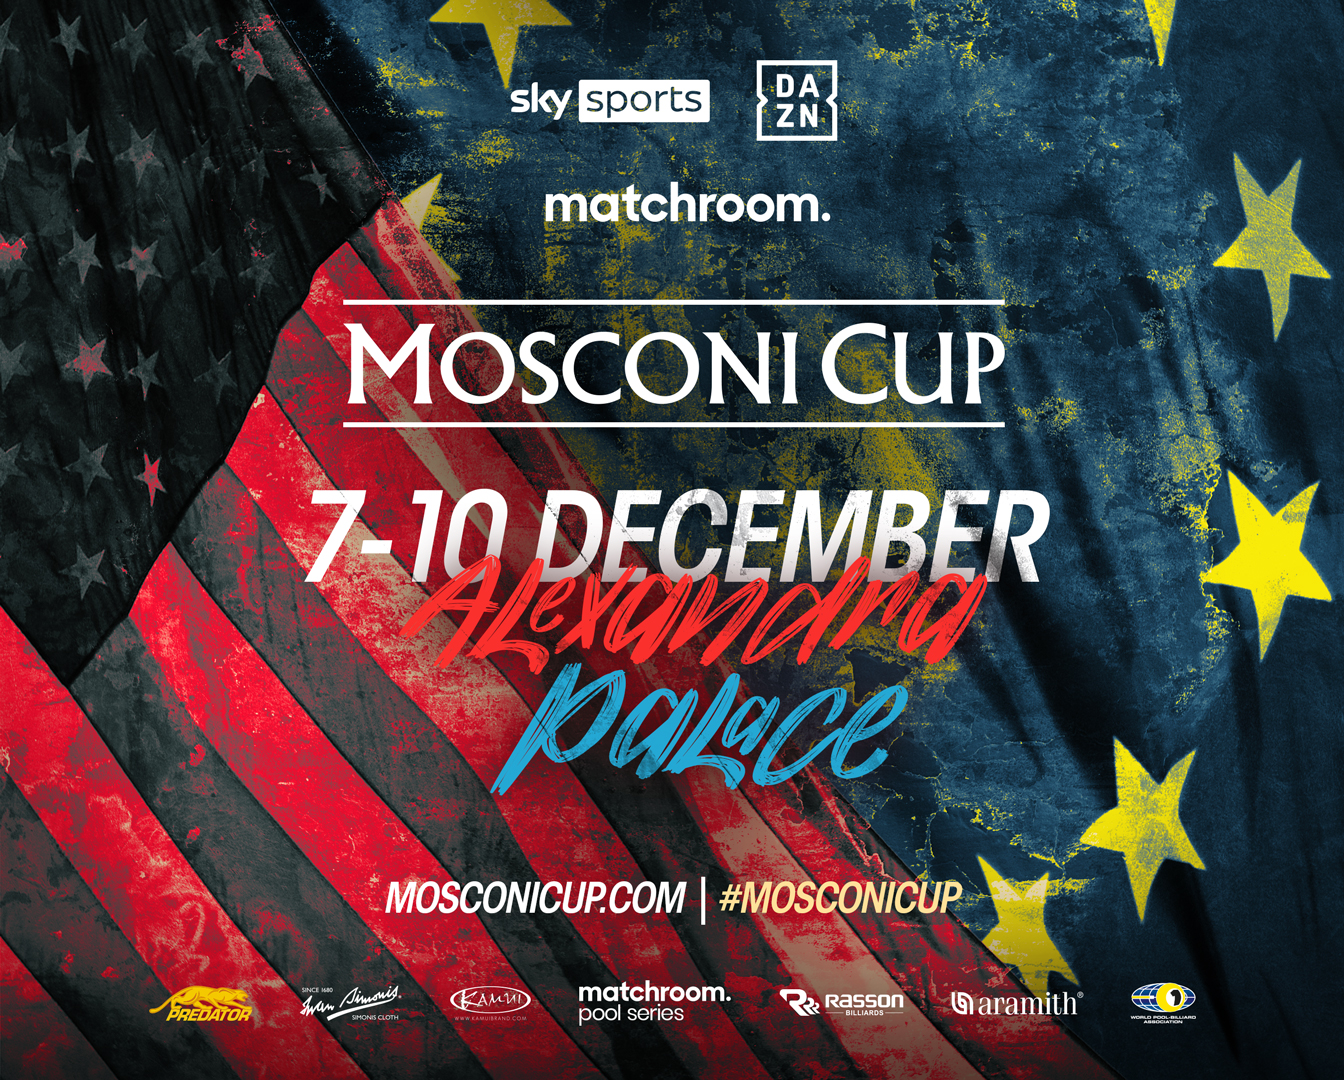 MOSCONI CUP: TICKETS ON SALE AUG 23